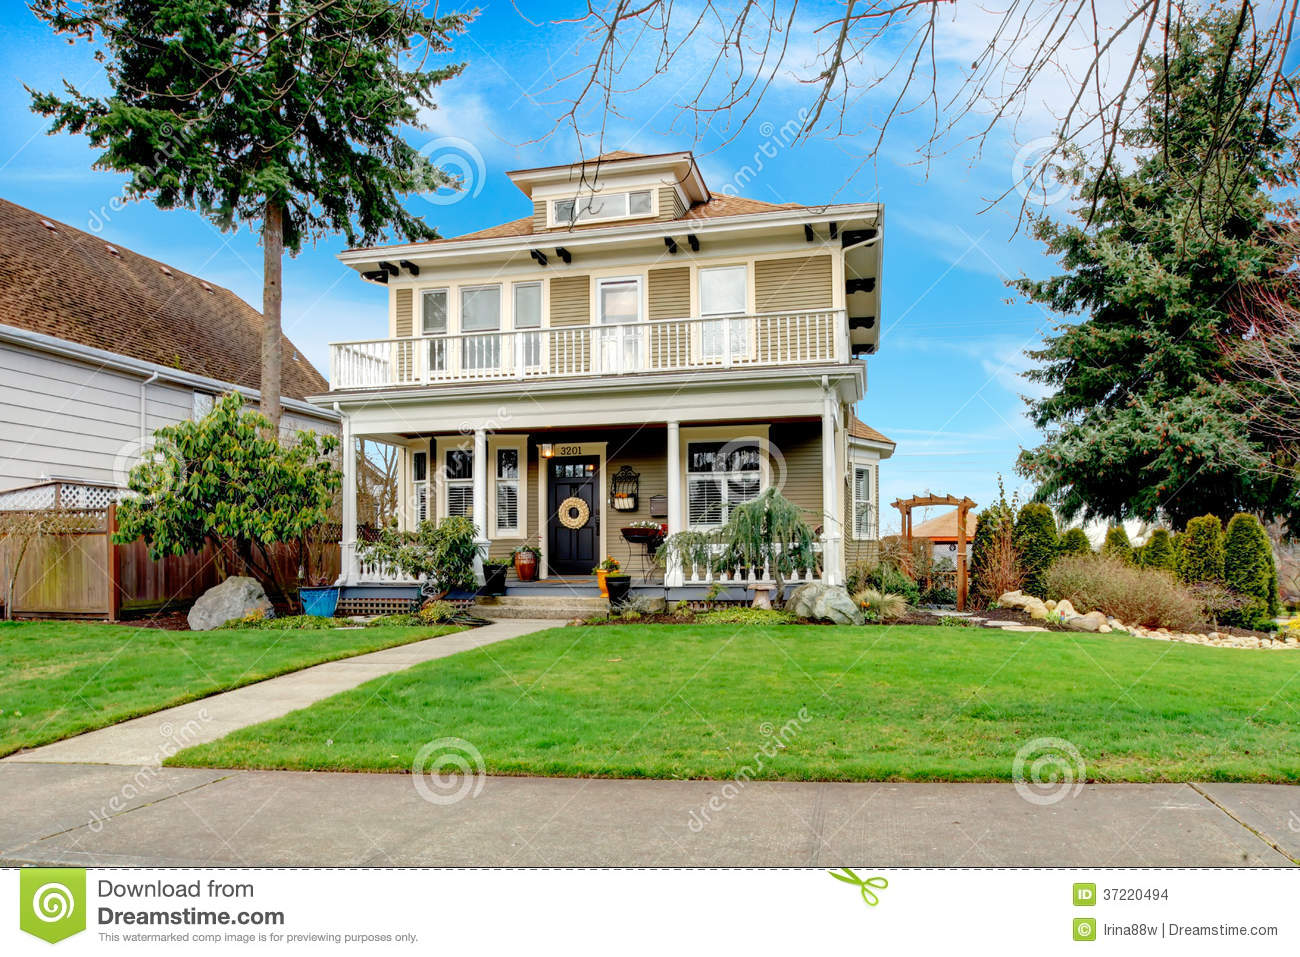 Two story american house with white column porch stock for Classic american house